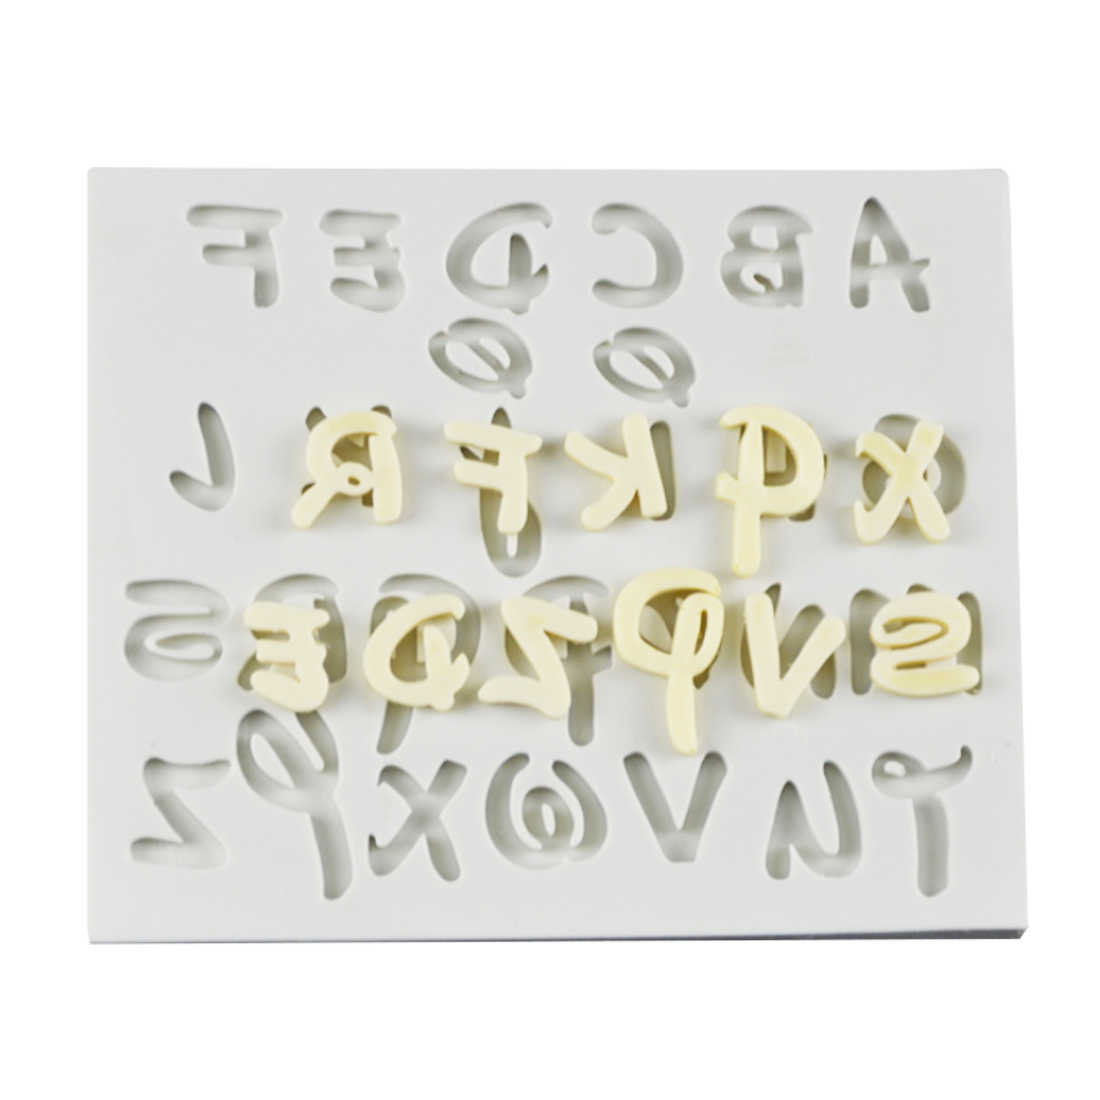 New Soap Mould 1PC Letter Alphabet Number Shape Fondant Molds  Kitchen Cake Decorating Tools Chocolate Soap Mold Cake Stencils